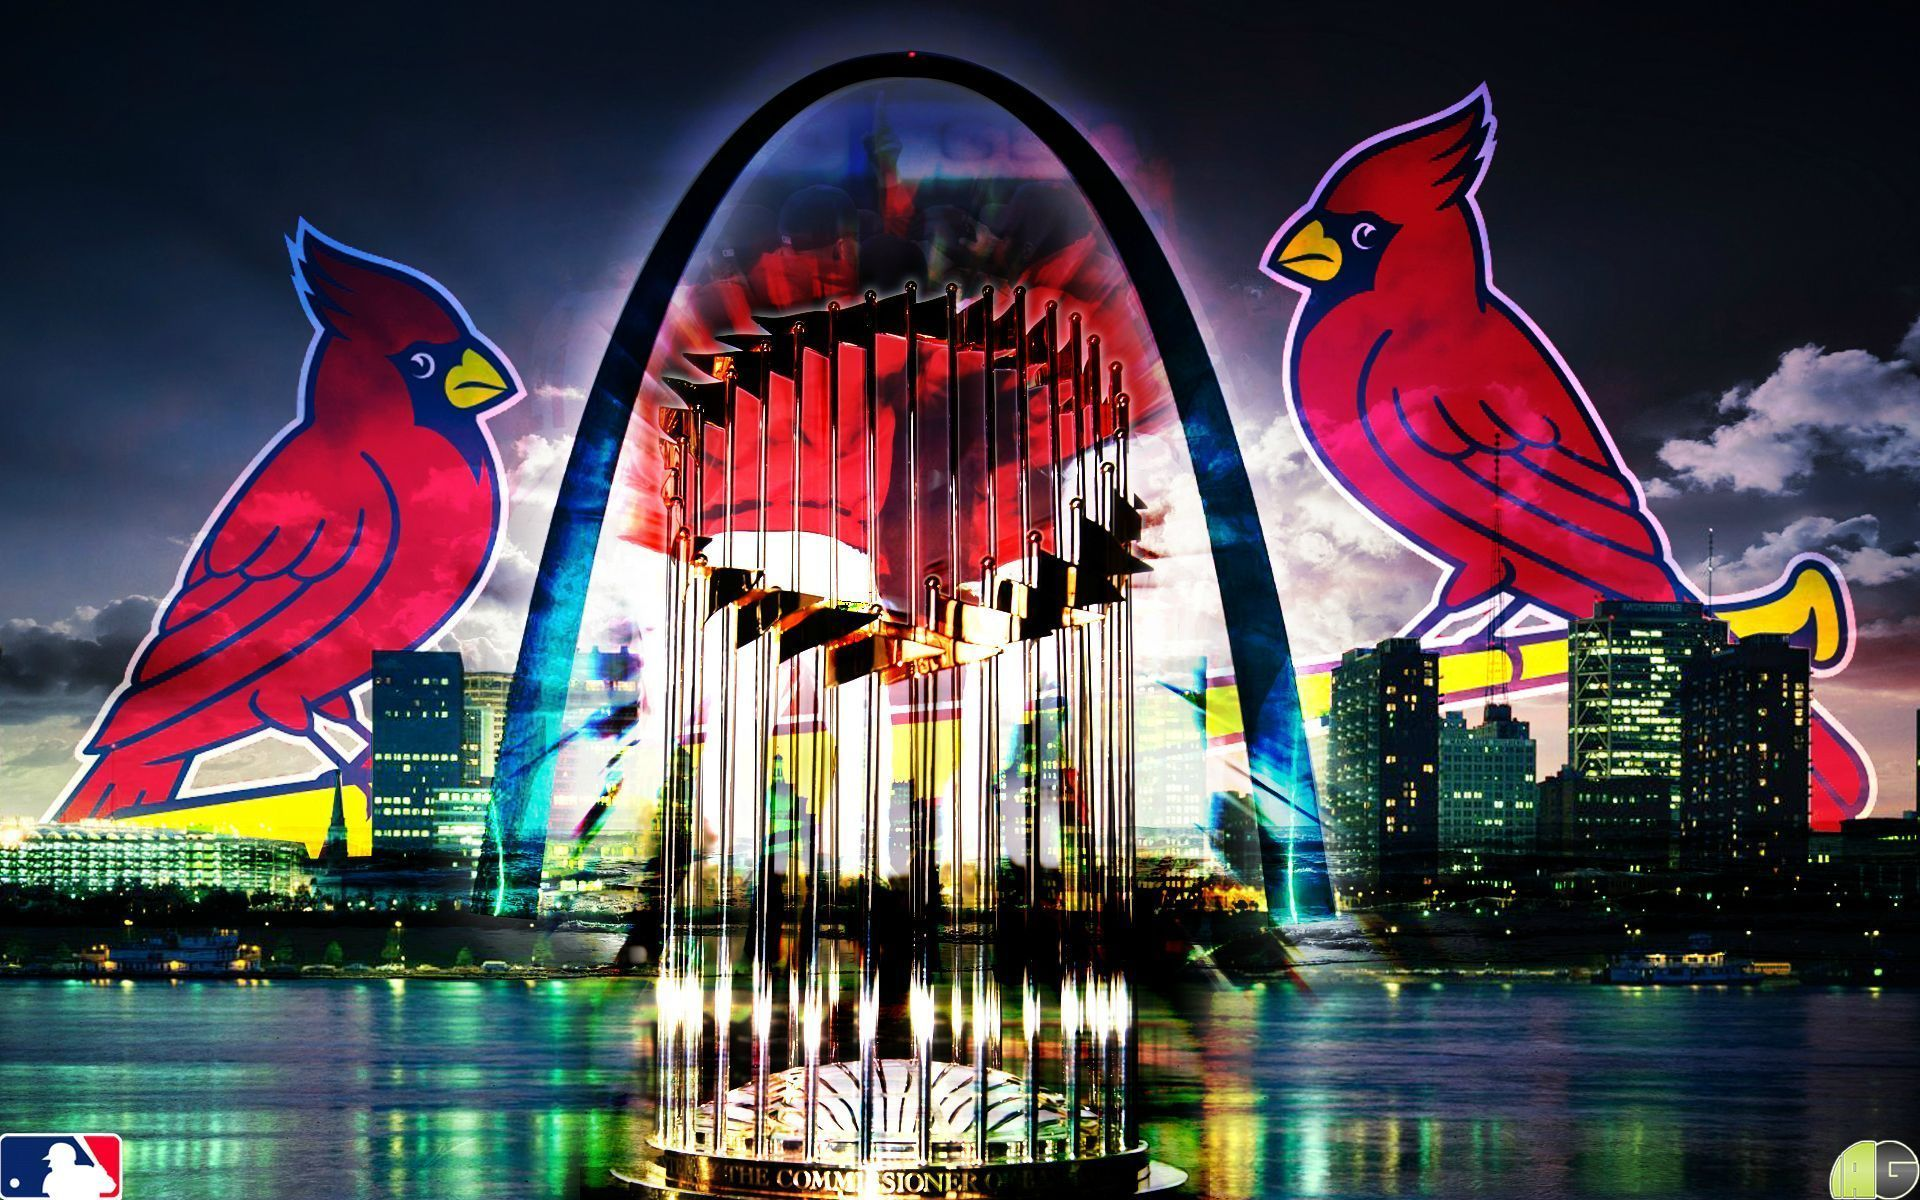 St Louis Cardinal Wallpaper For Iphone Iphone S Free 1600 1200 St Louis Cardinals Wallpaper 23 Wallpapers Adorable Wallpapers